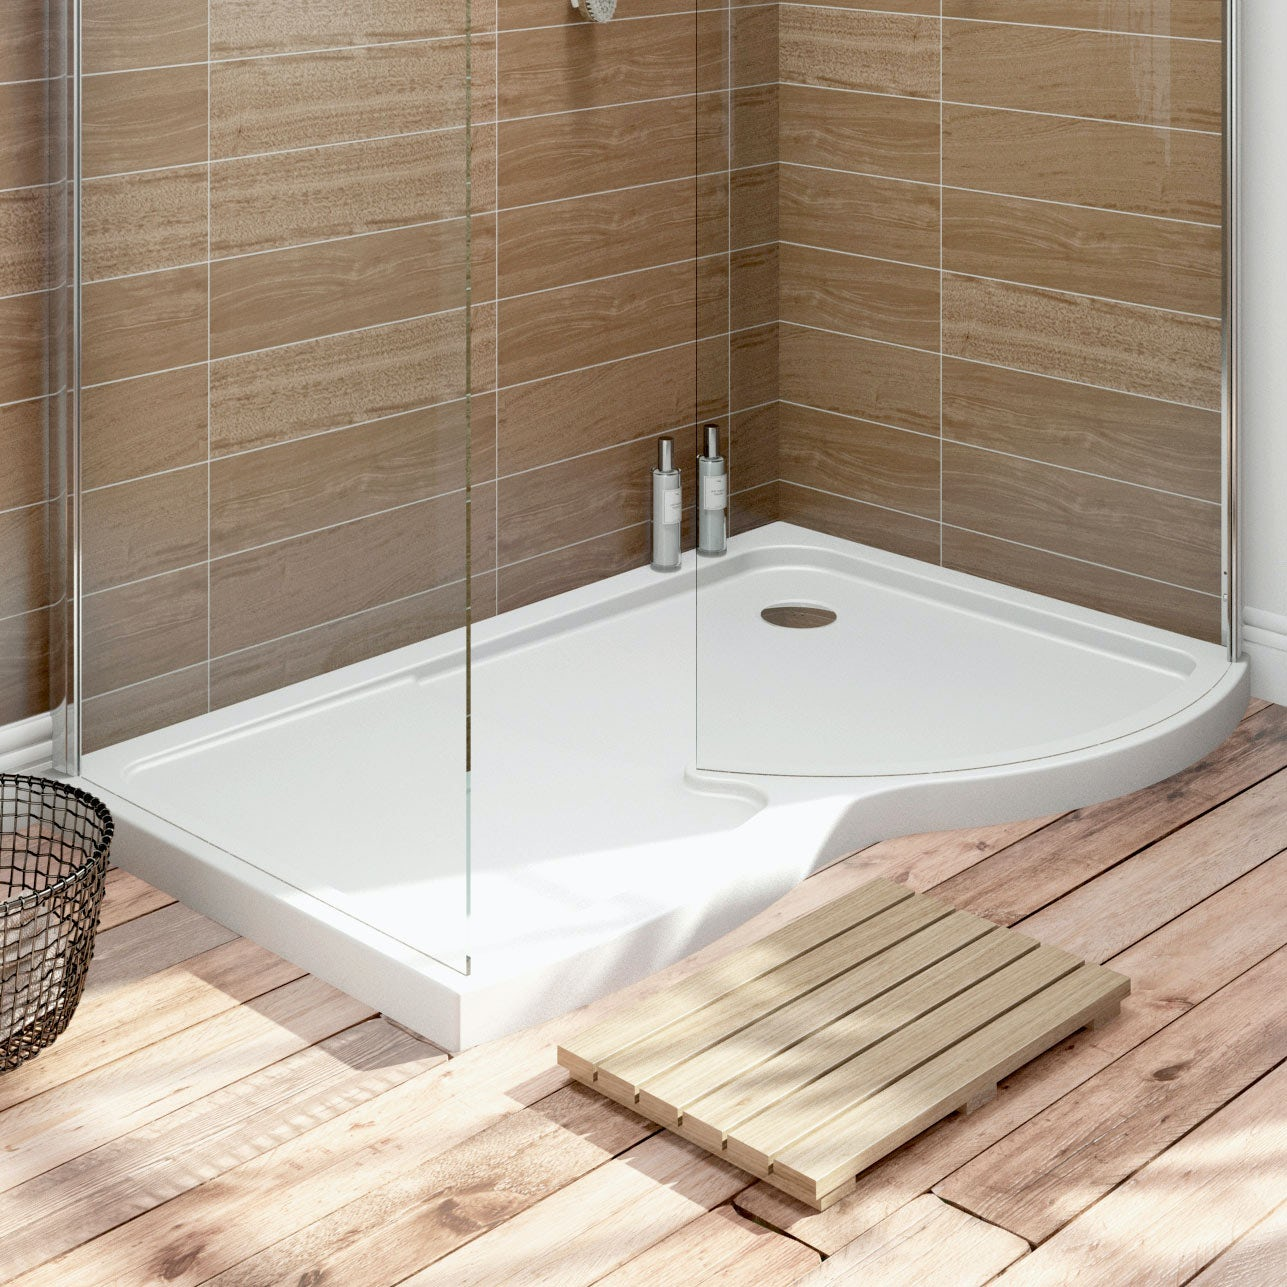 Orchard Curved Walk In Shower Enclosure Tray Rh